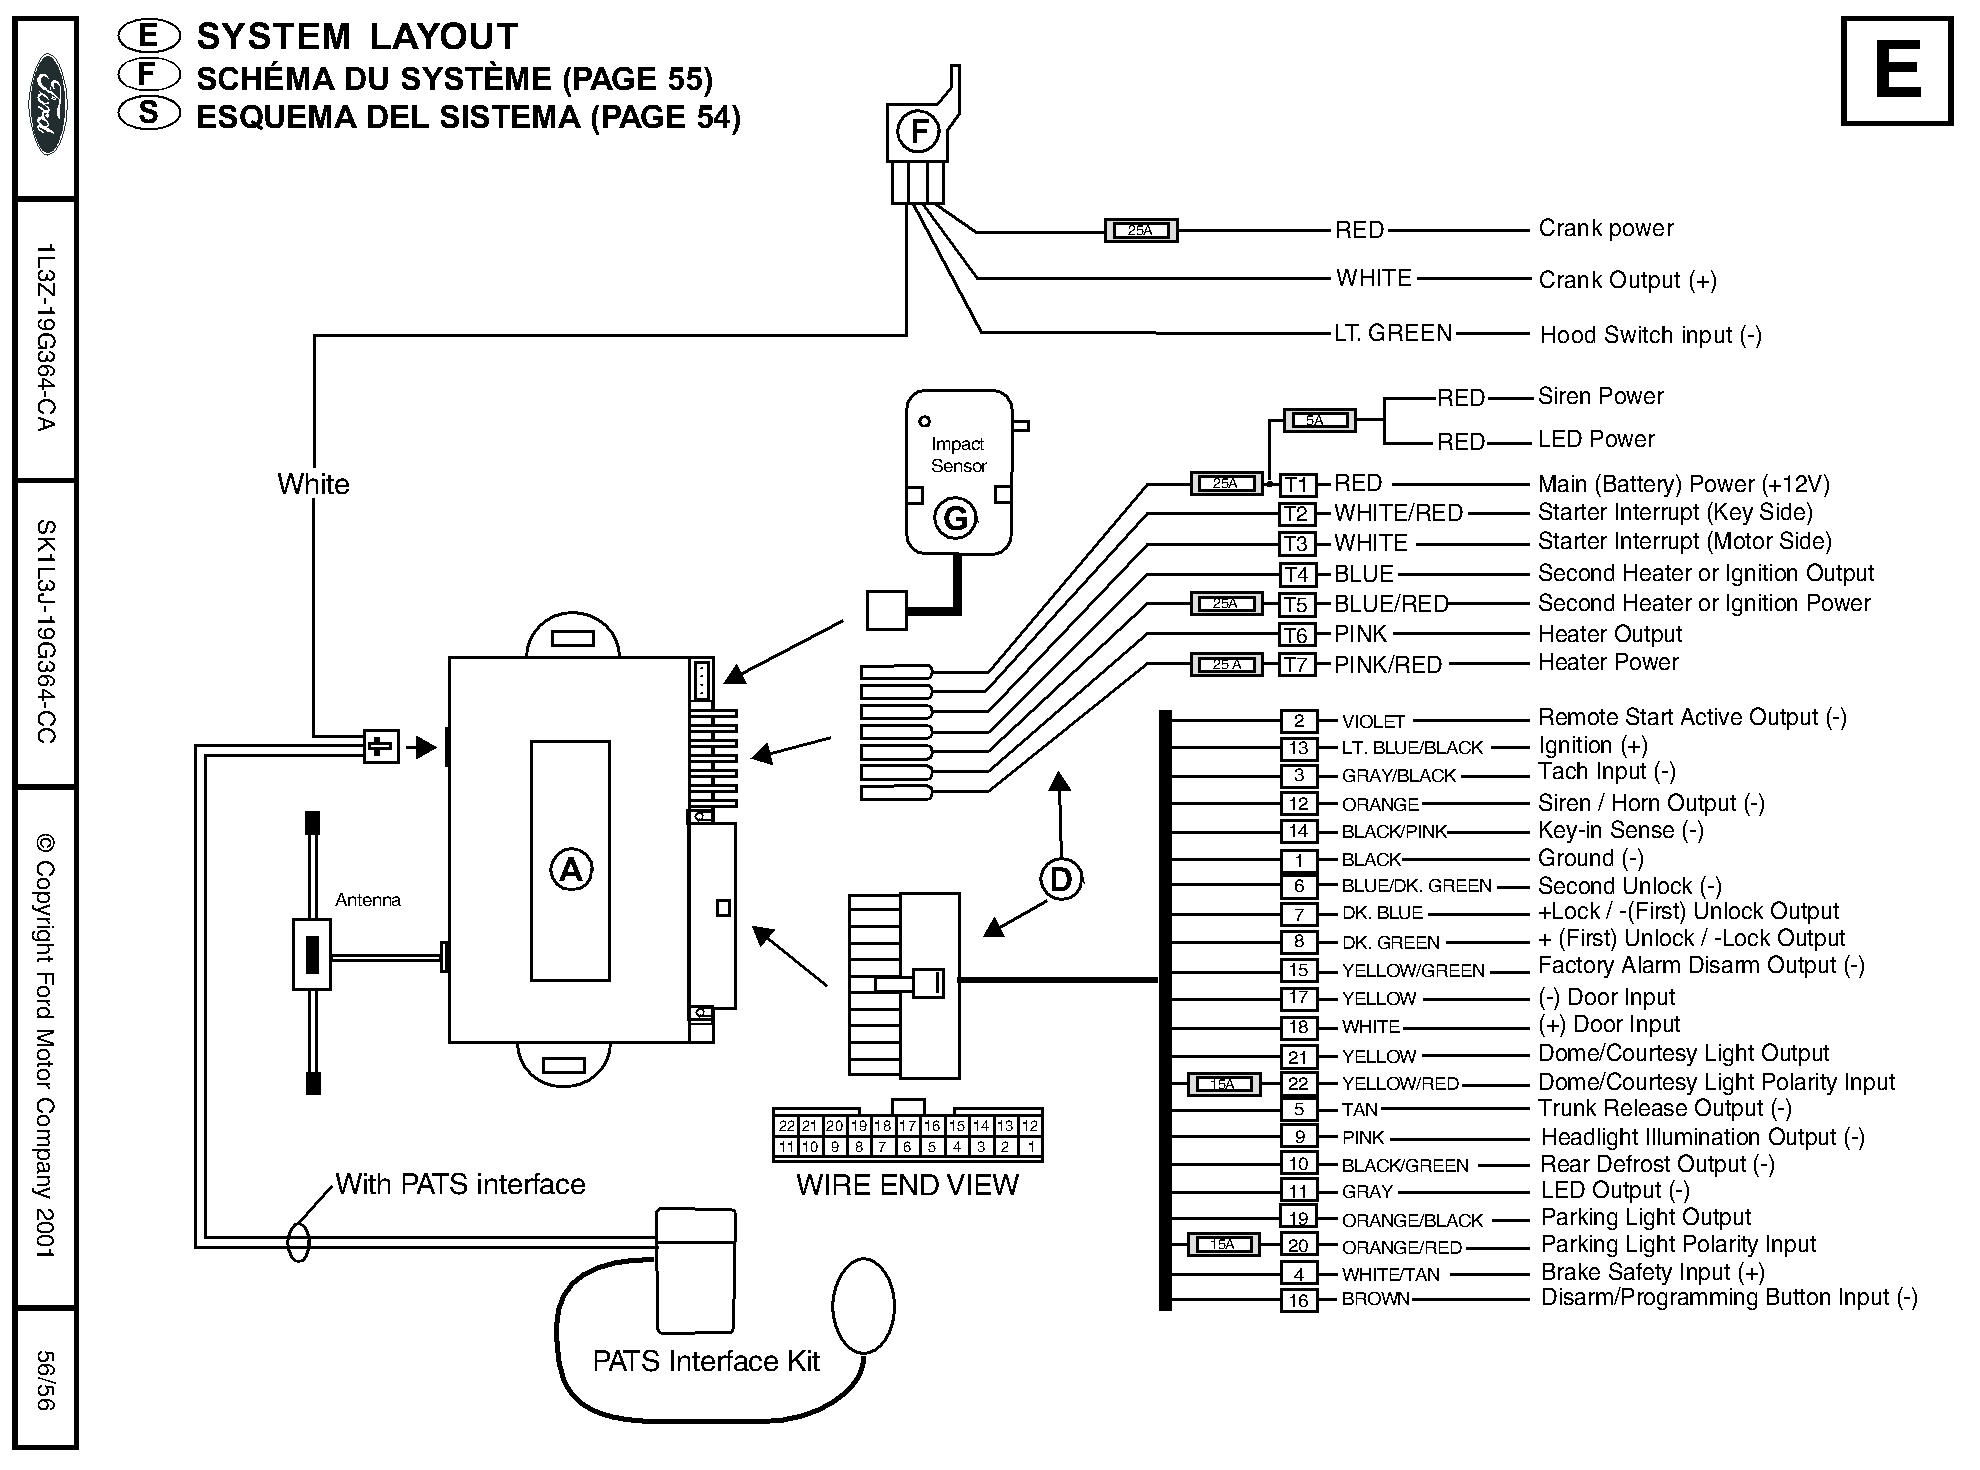 1114092 Alternator Wiring And Weird Finding also 2005 F250 Fuse Box Diagram furthermore Faq About Engine Transmission Coolers in addition 2qf  Fuse Box Diagram 2002 Ford F 150 furthermore 501518108477618714. on 1993 ford e 250 wiring diagram